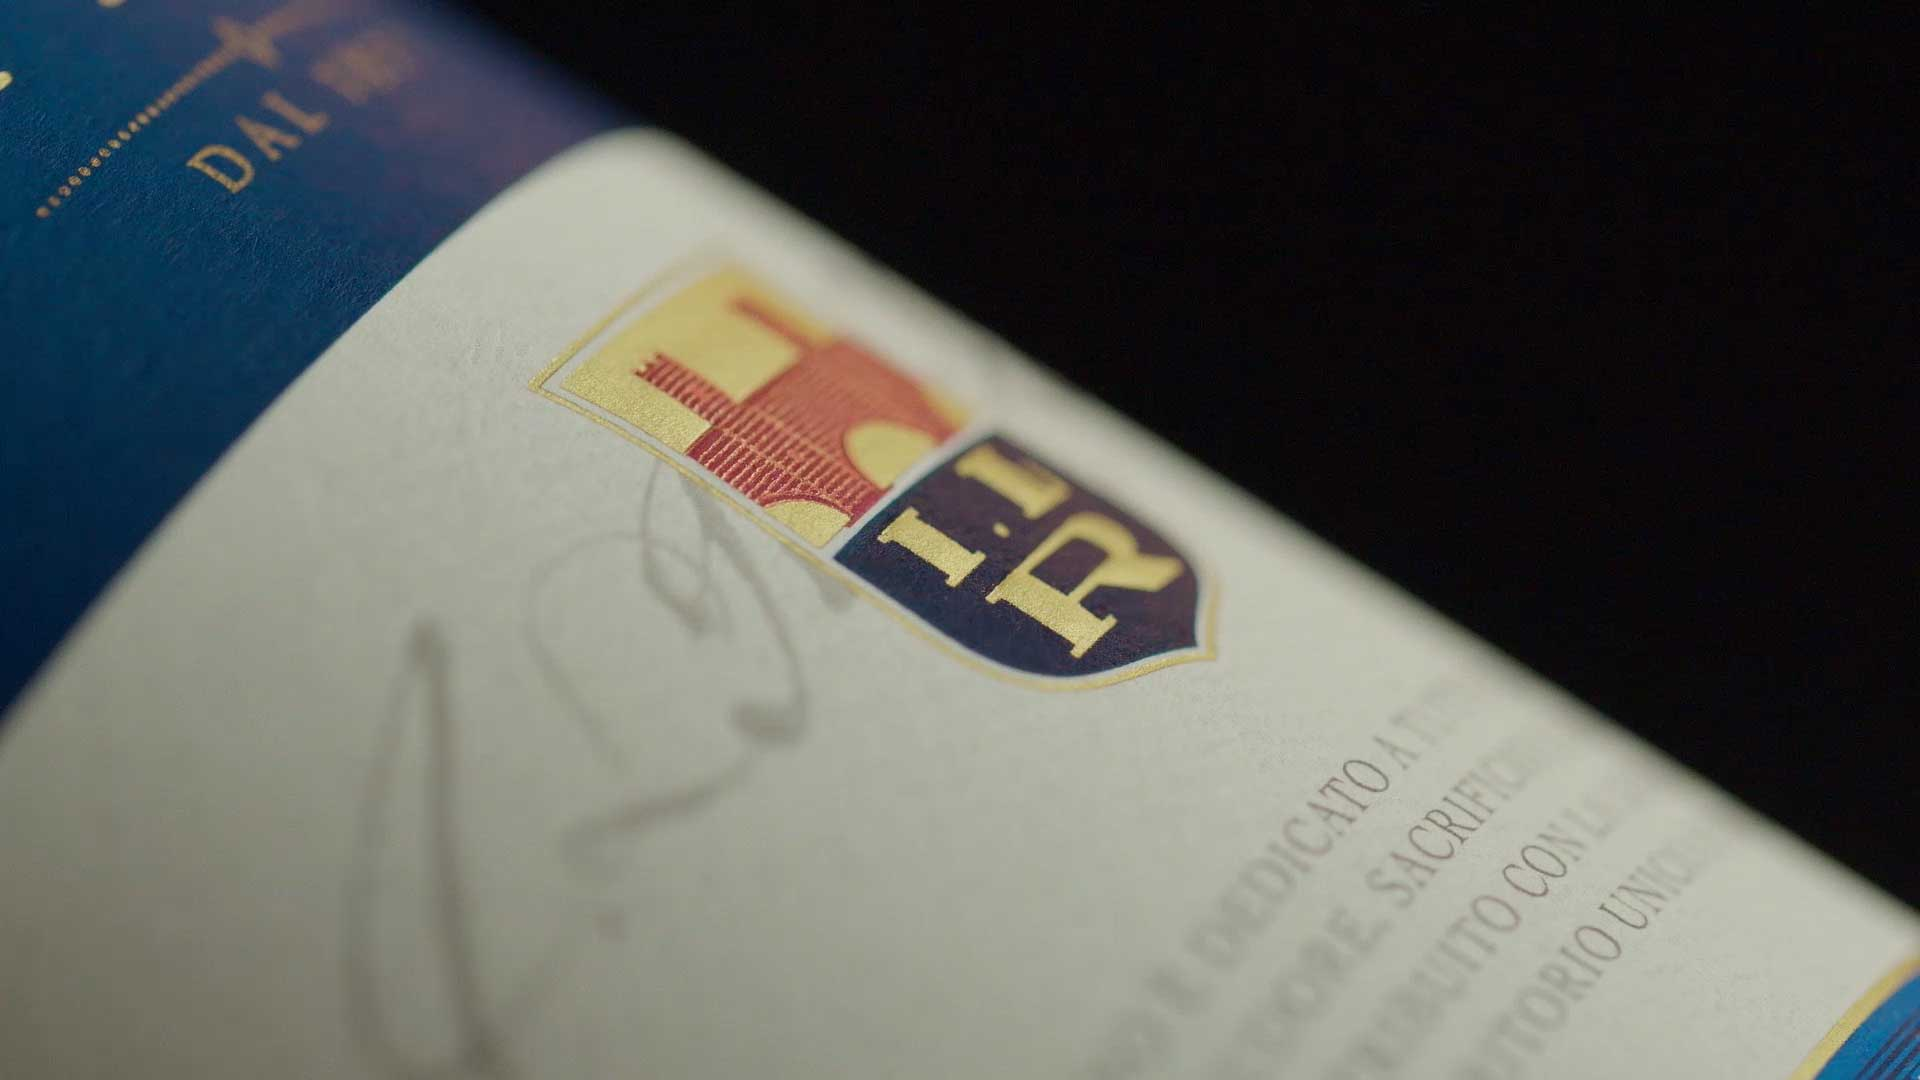 Video Reveal Ruffino Chianti riserva